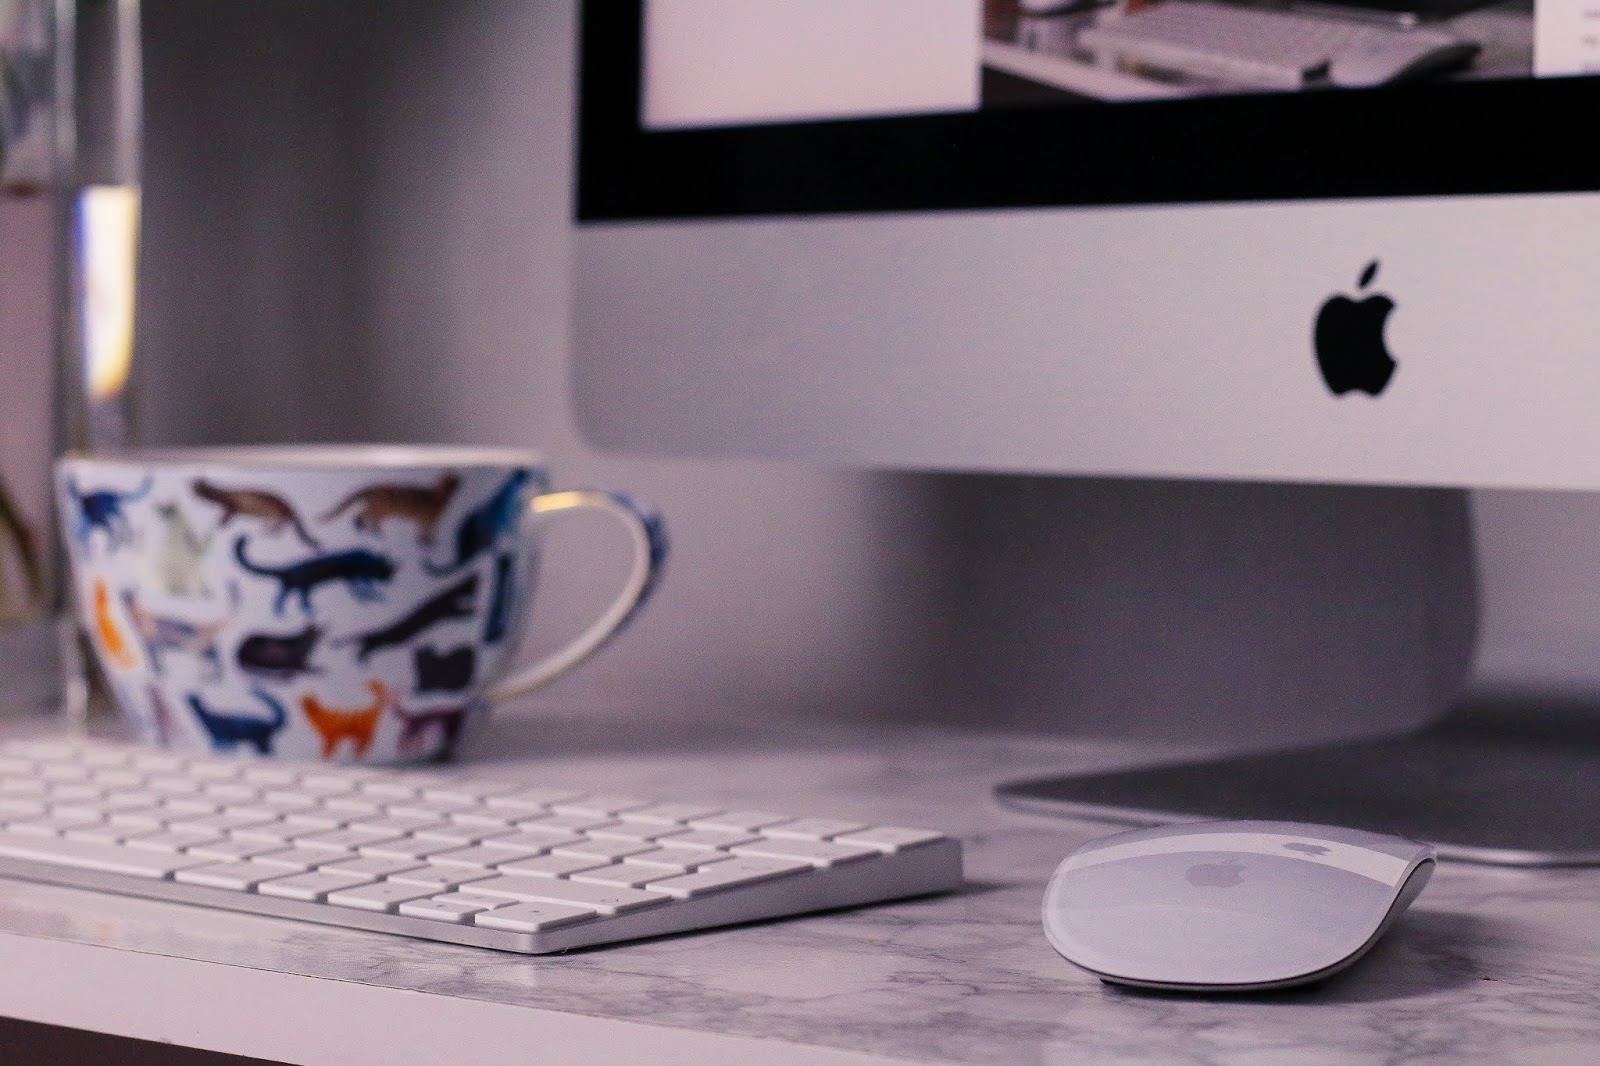 Close up of iMac sitting on a white marble desk with a cat cup next to it on thelifeofaglasgowgirl.co.uk